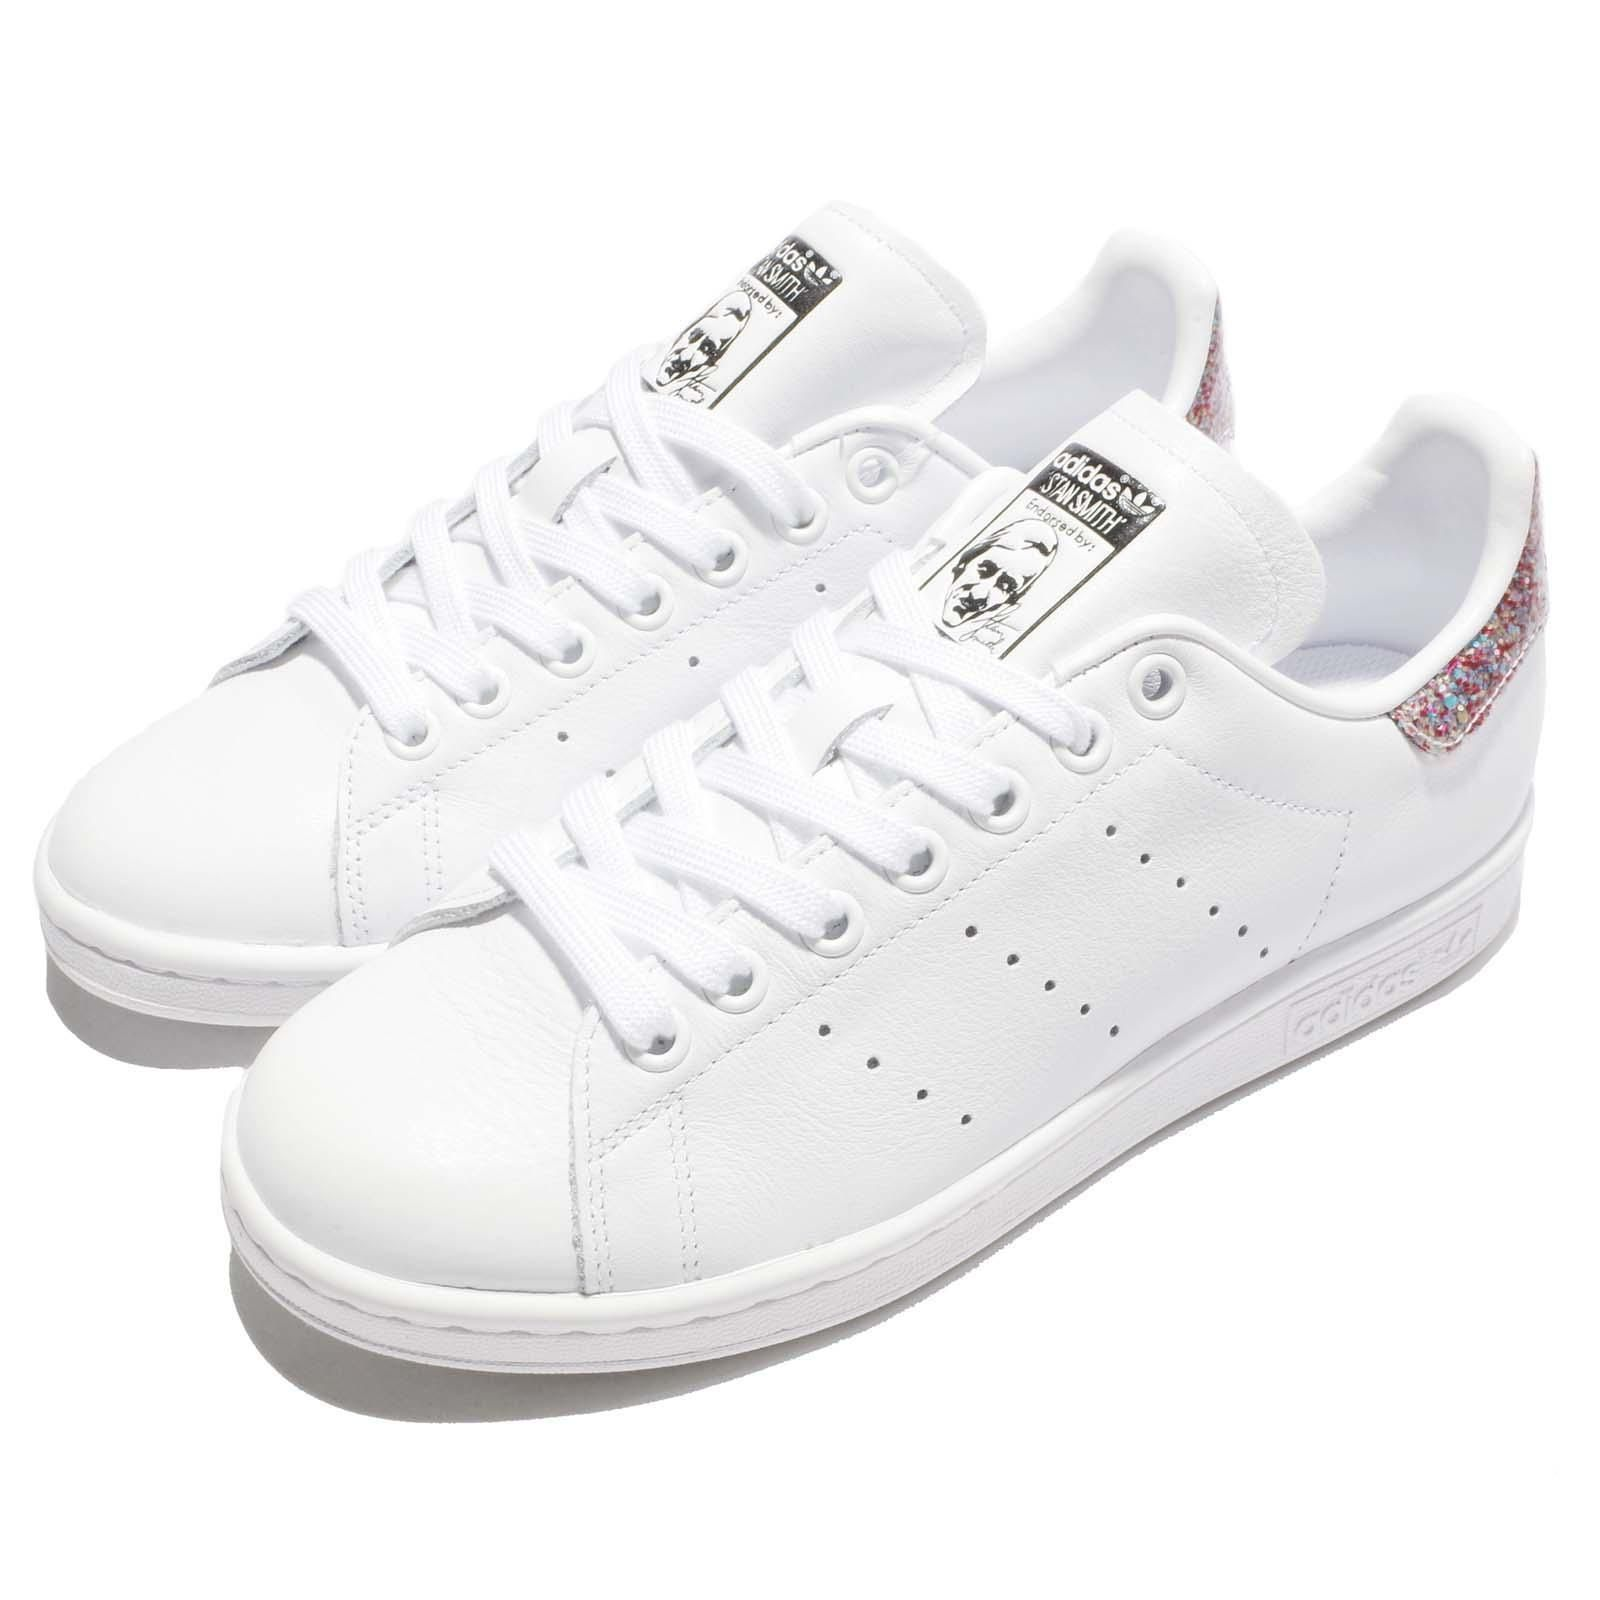 timeless design ab0d0 56504 Adidas Originals Stan Smith W Glitter White Rainbow Women Shoes Sneakers  S76912